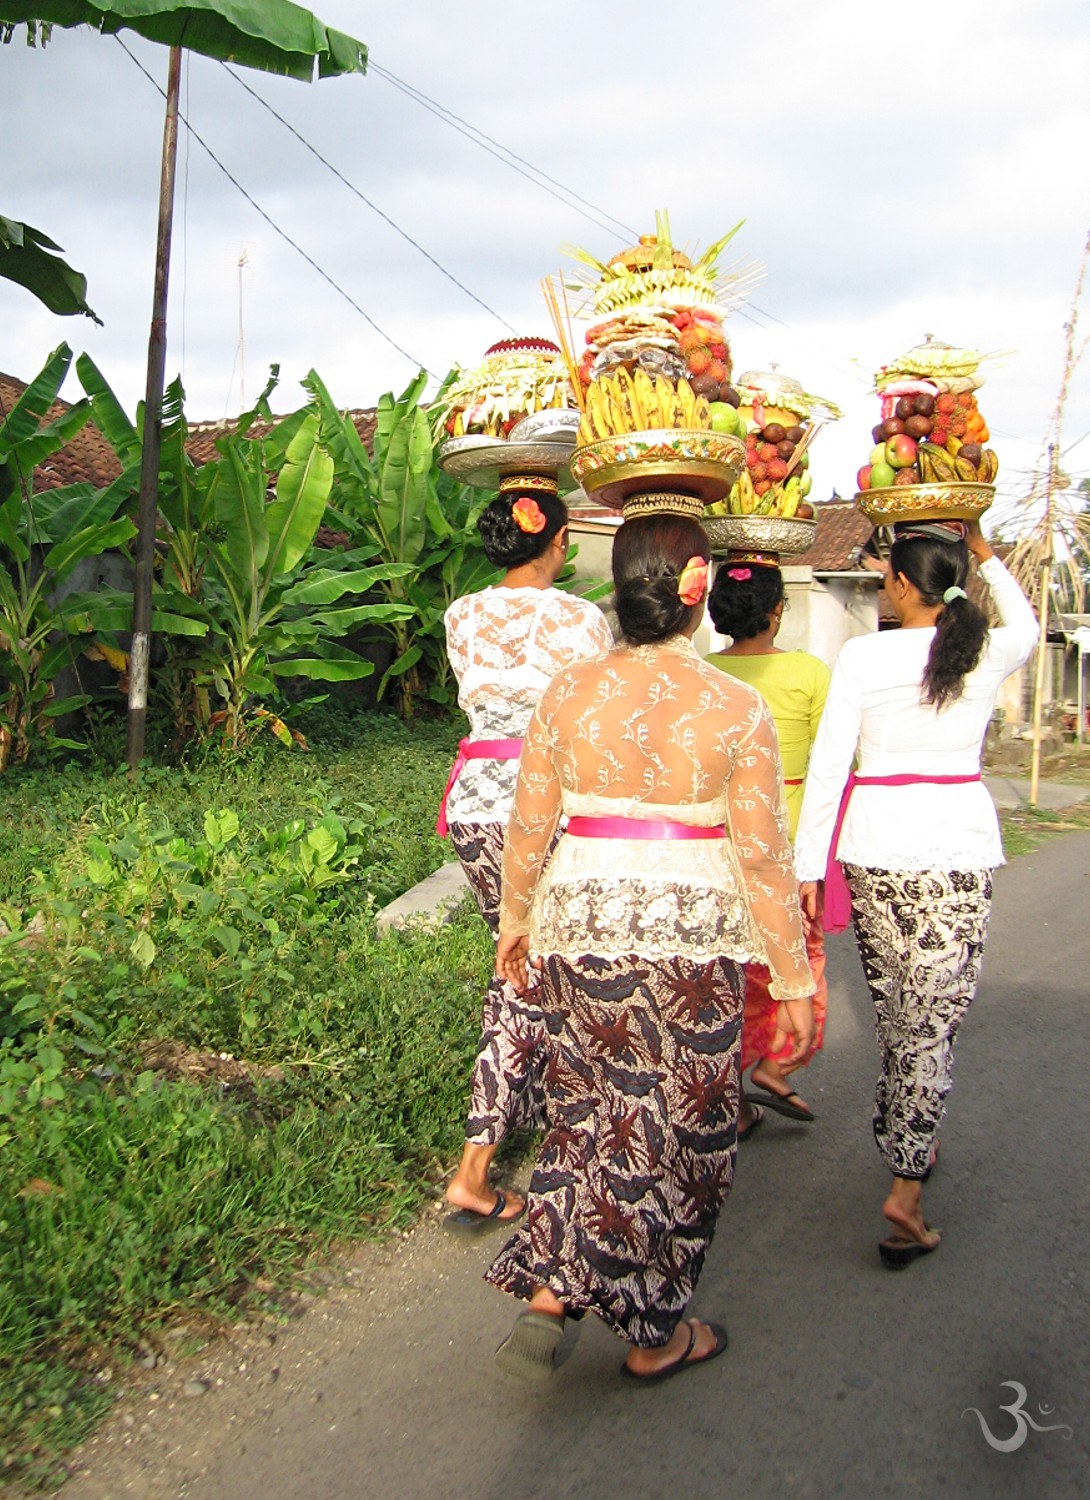 Balinese woman carry offerings to the temple Pura Dalem Sukawati (Odalan)